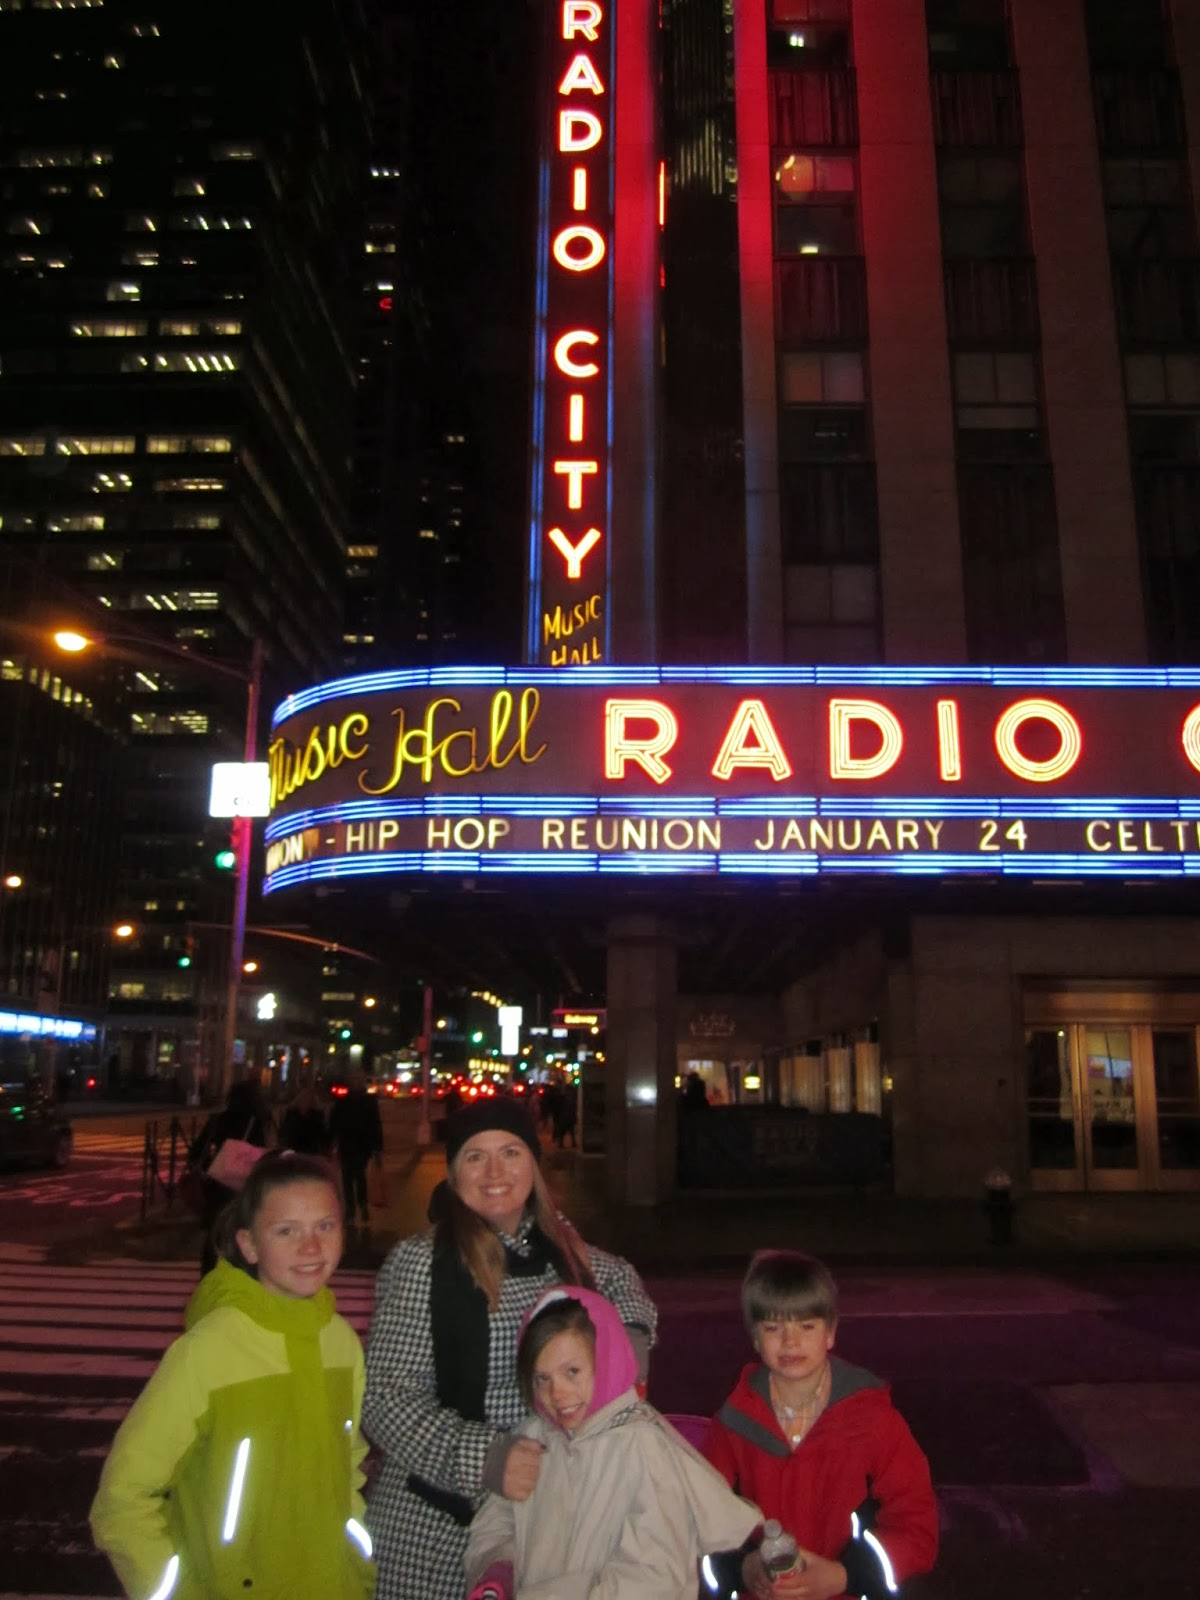 radio city music hall, new york city, family smiling